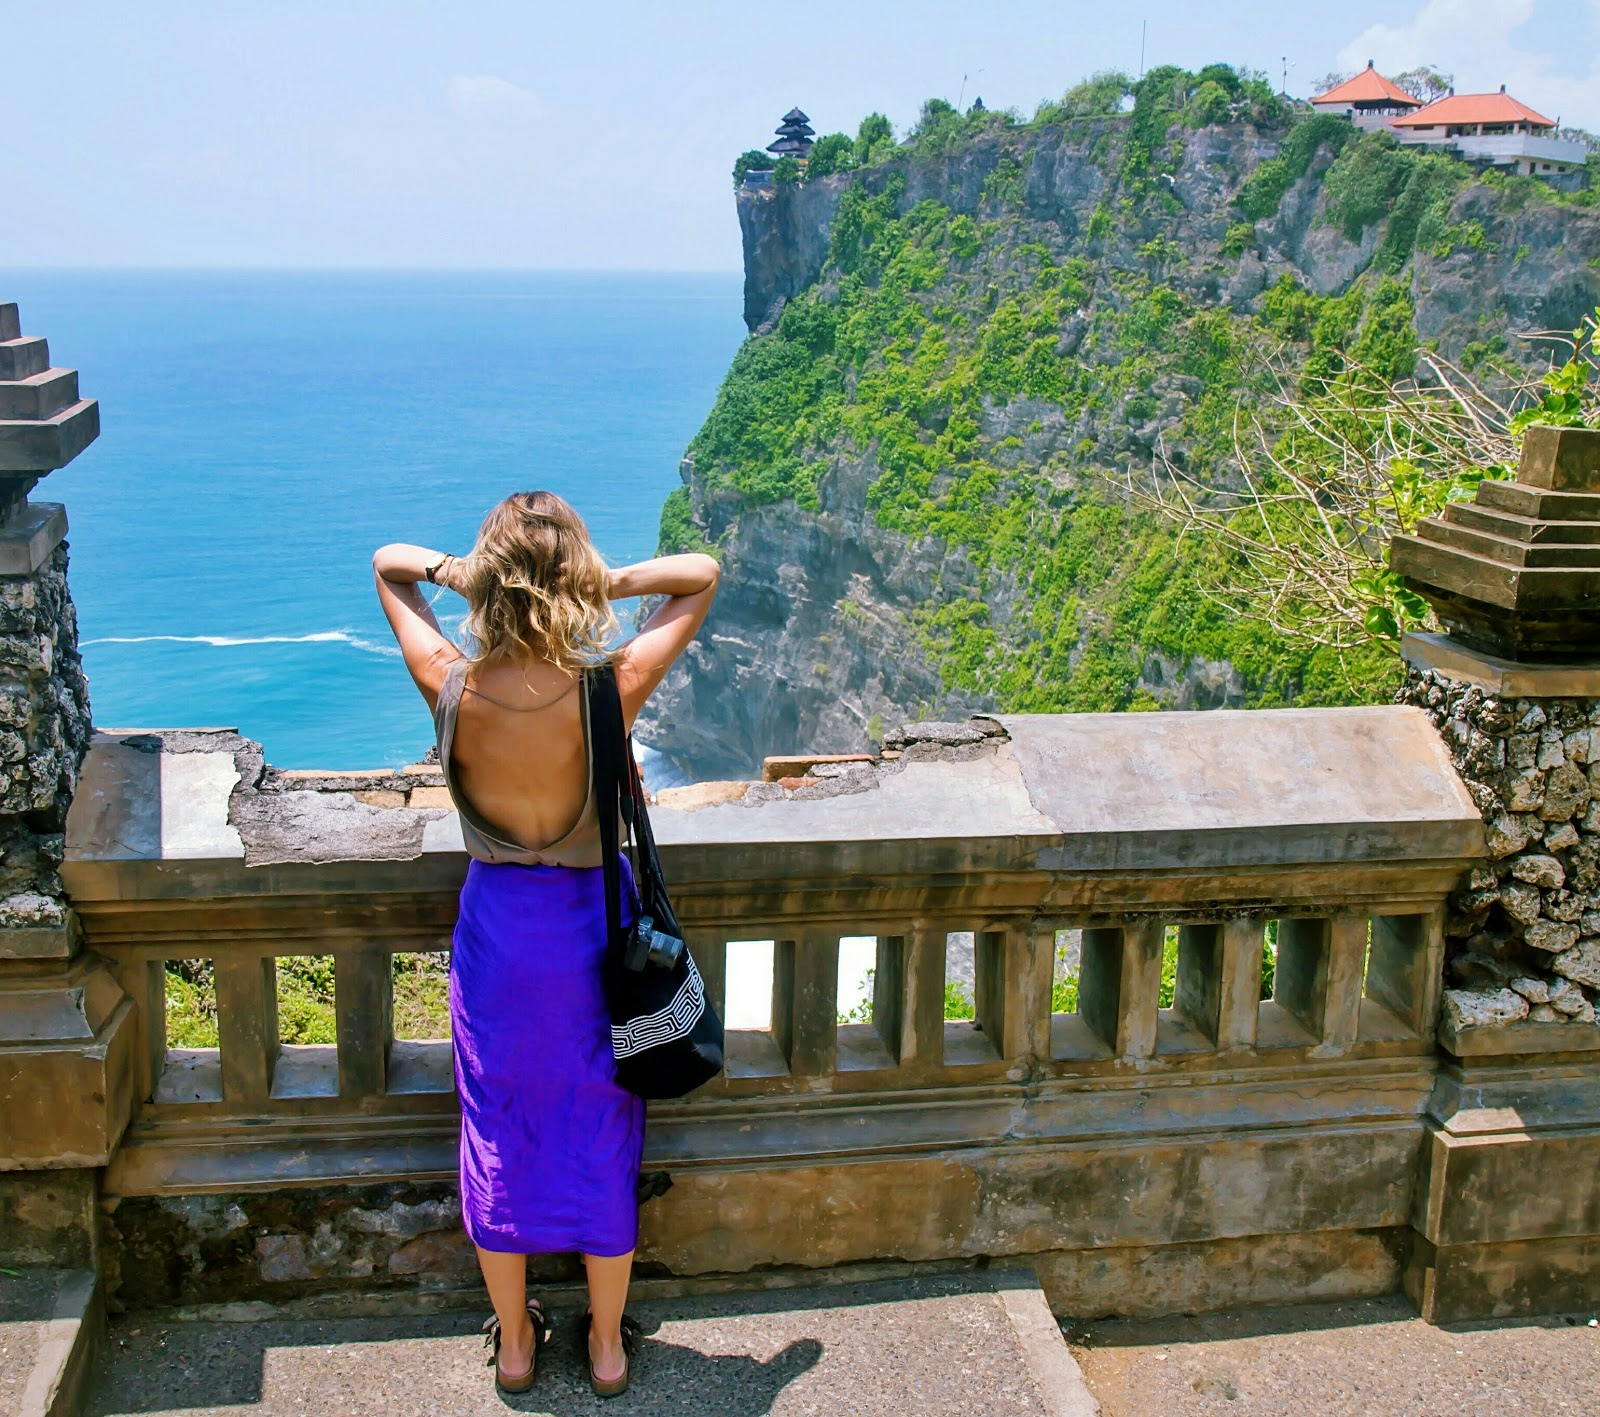 Fashion and Travel Blogger, Alison Hutchinson, at the beautiful view of Uluwatu Temple in Bali, Indonesia